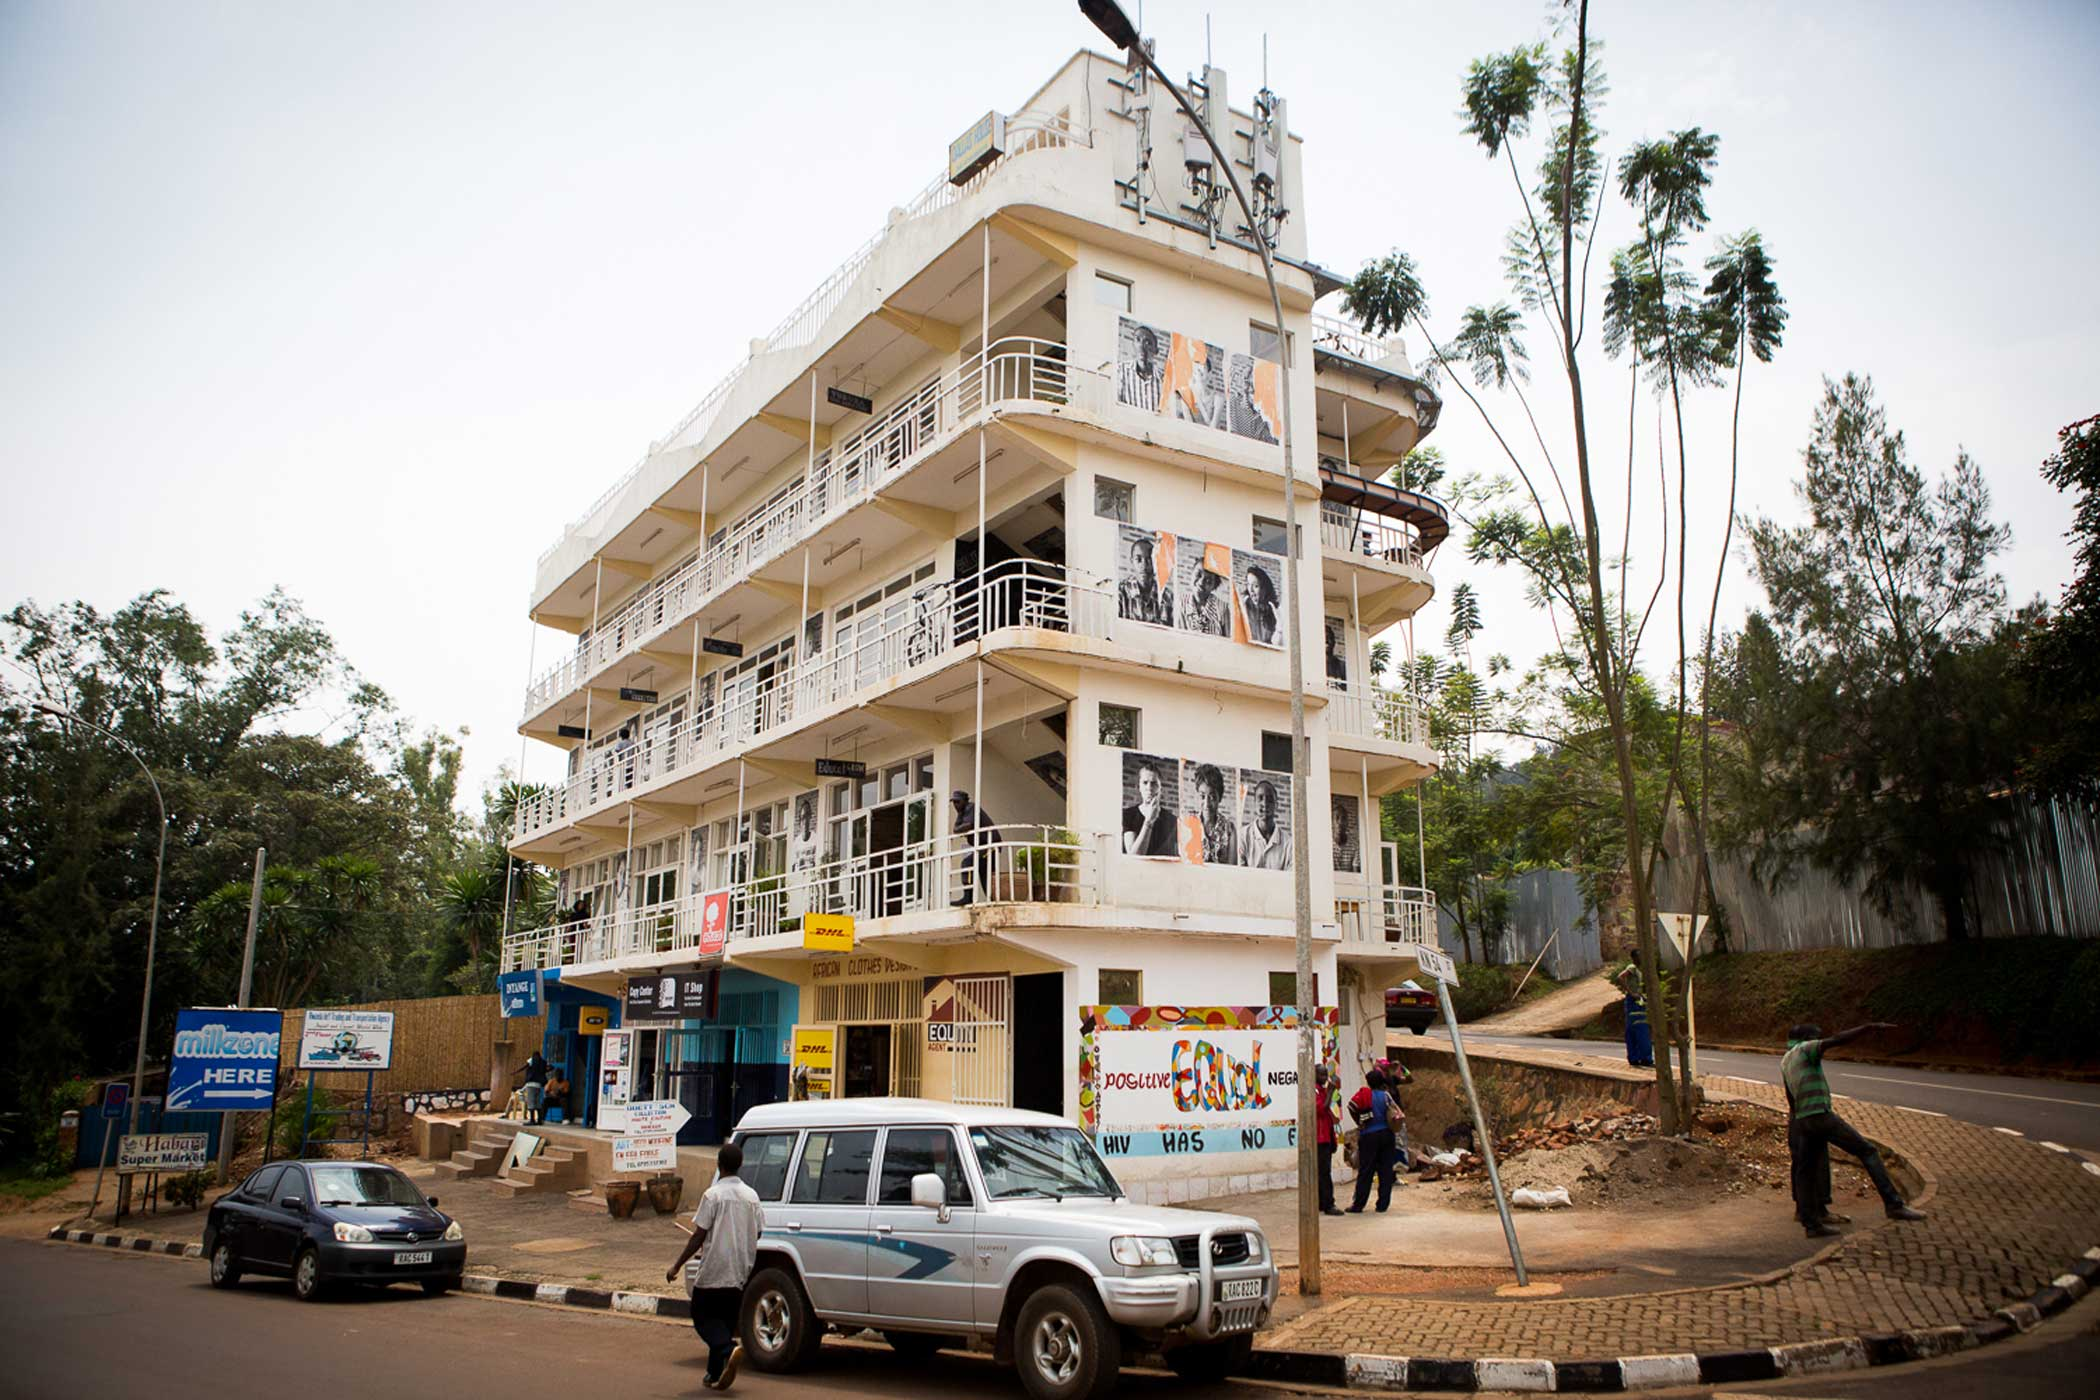 The Office , a coworking space in Kigali. It is a shared office where tech entrepreneurs, consultants, freelancers, small business owners, and remote employees rent desk space and share the costs of a full-service office.